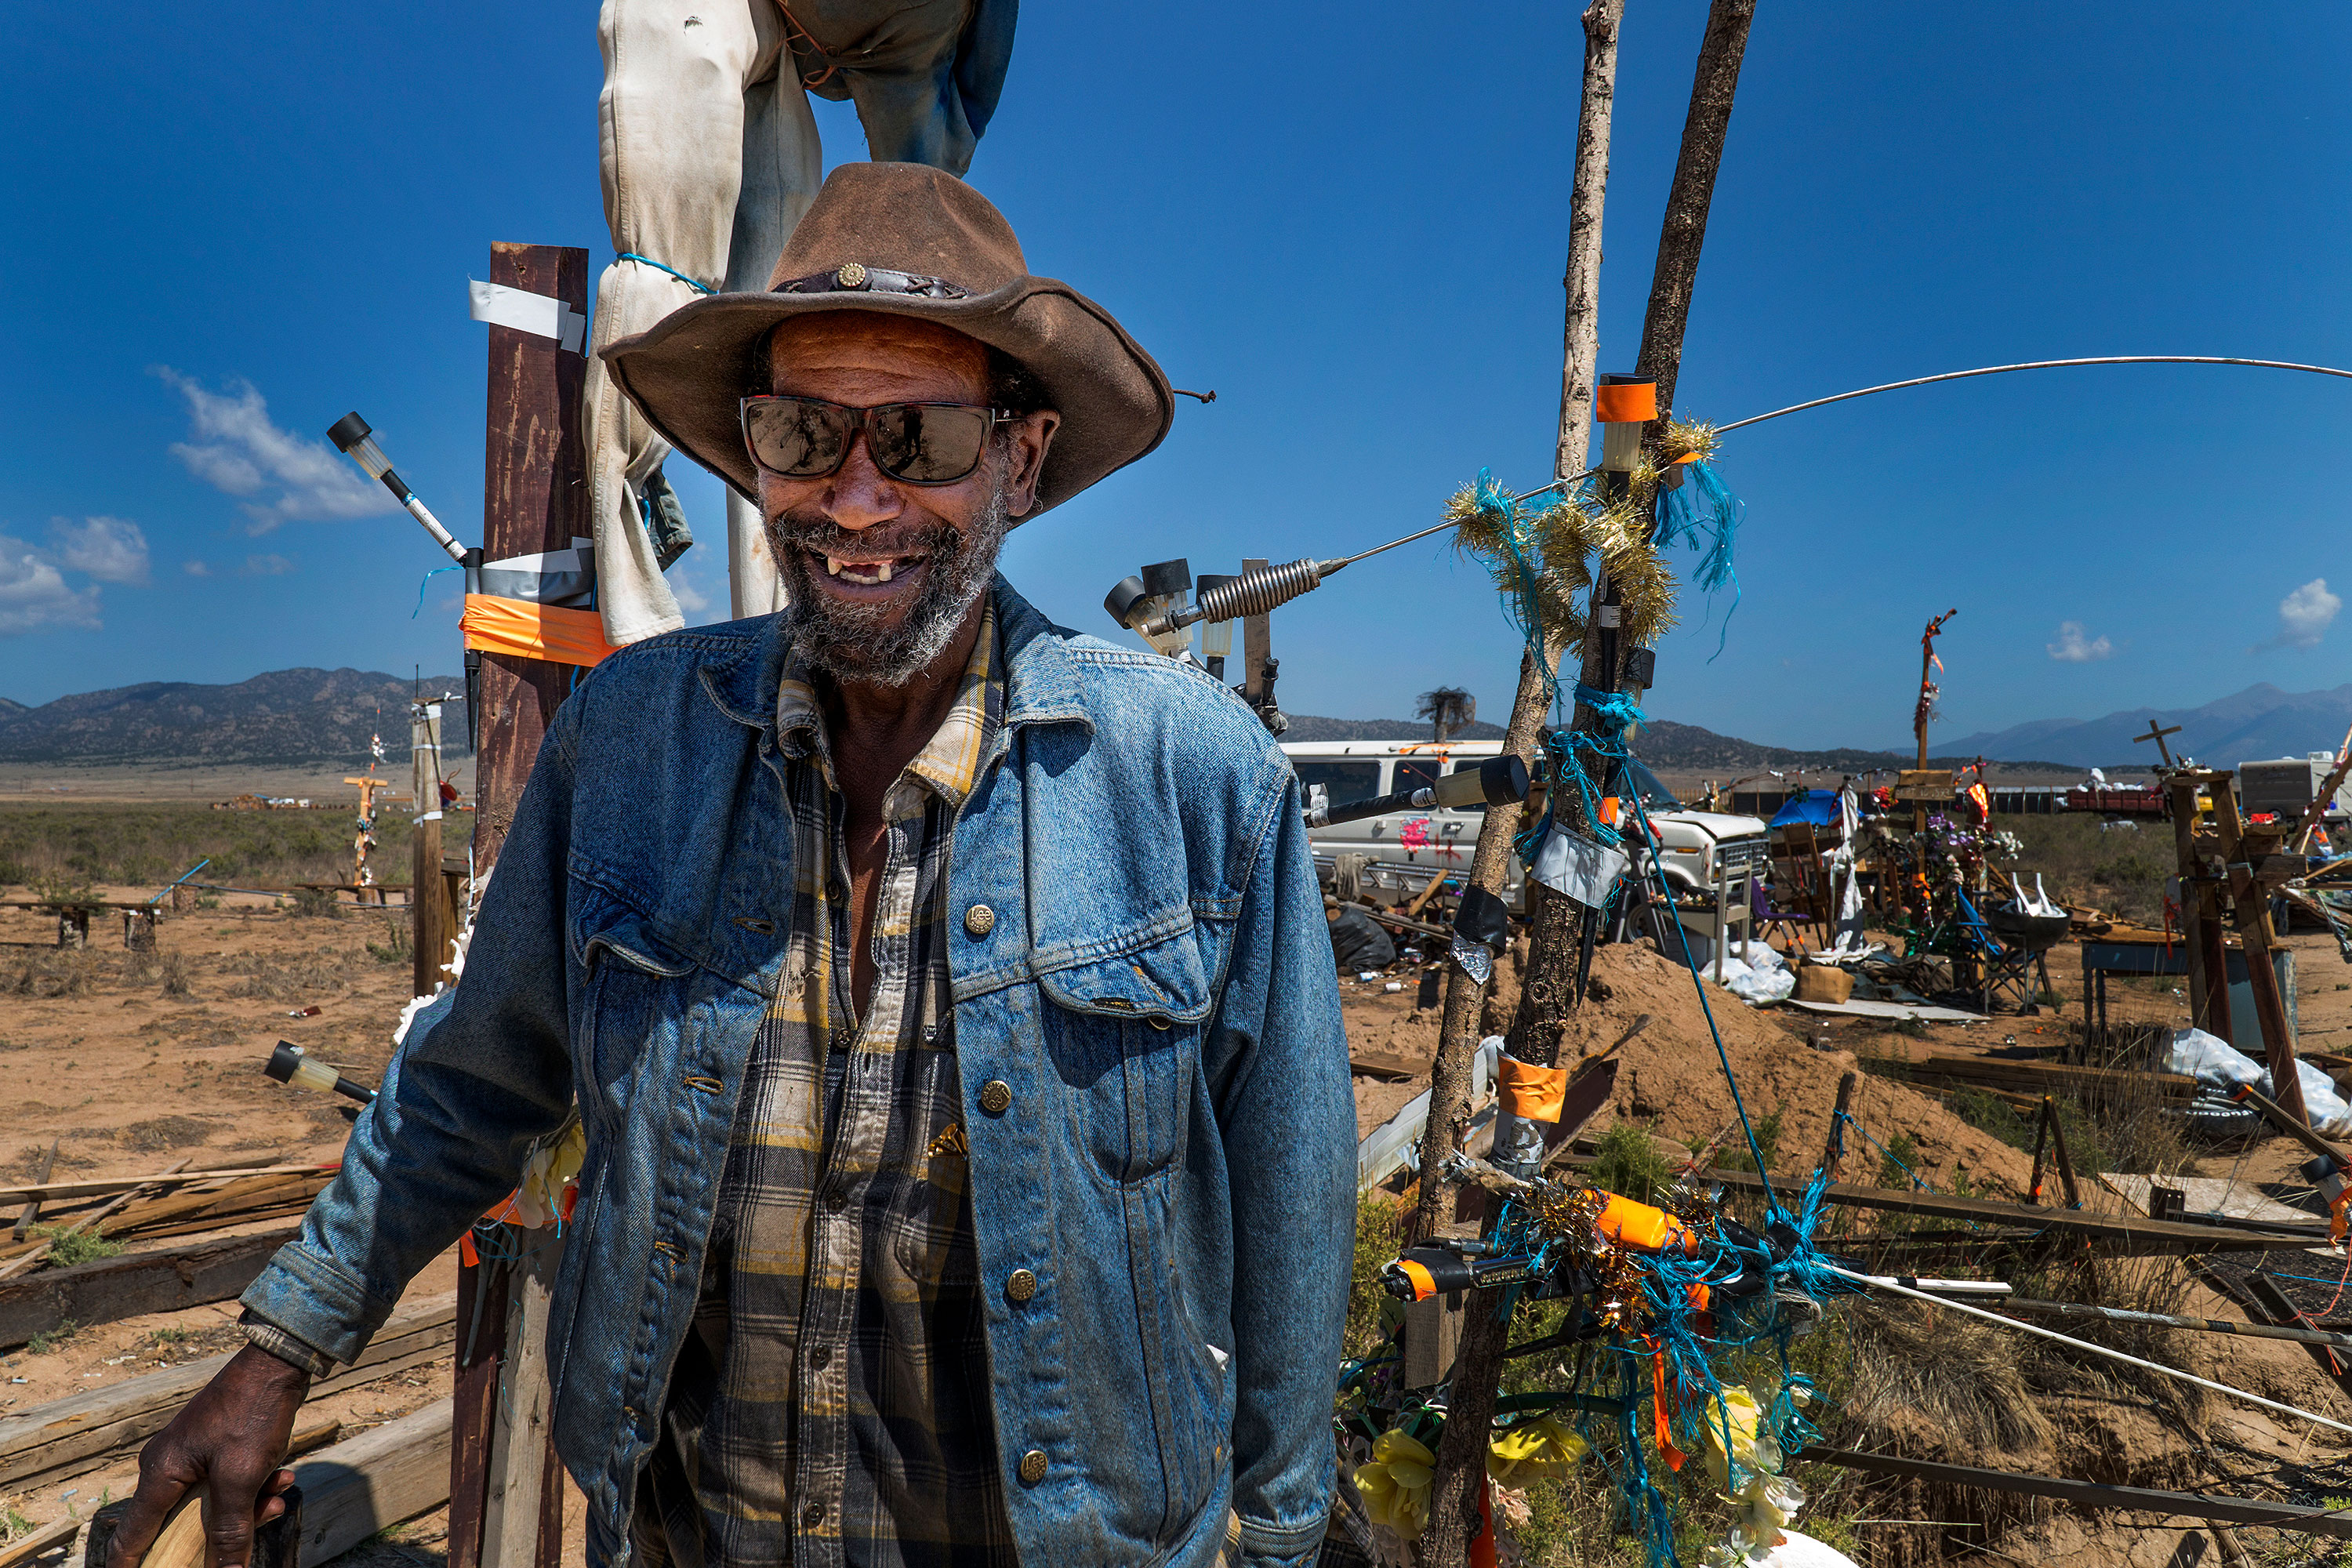 """<p>Roy L. Smith, known to many as """"Ramblin' Roy,"""" at Fort Roy at Royville, about 20 minutes outside of Saguache, on July 31, 2018. He said it took him a little more than a year to build this art compound.</p>"""